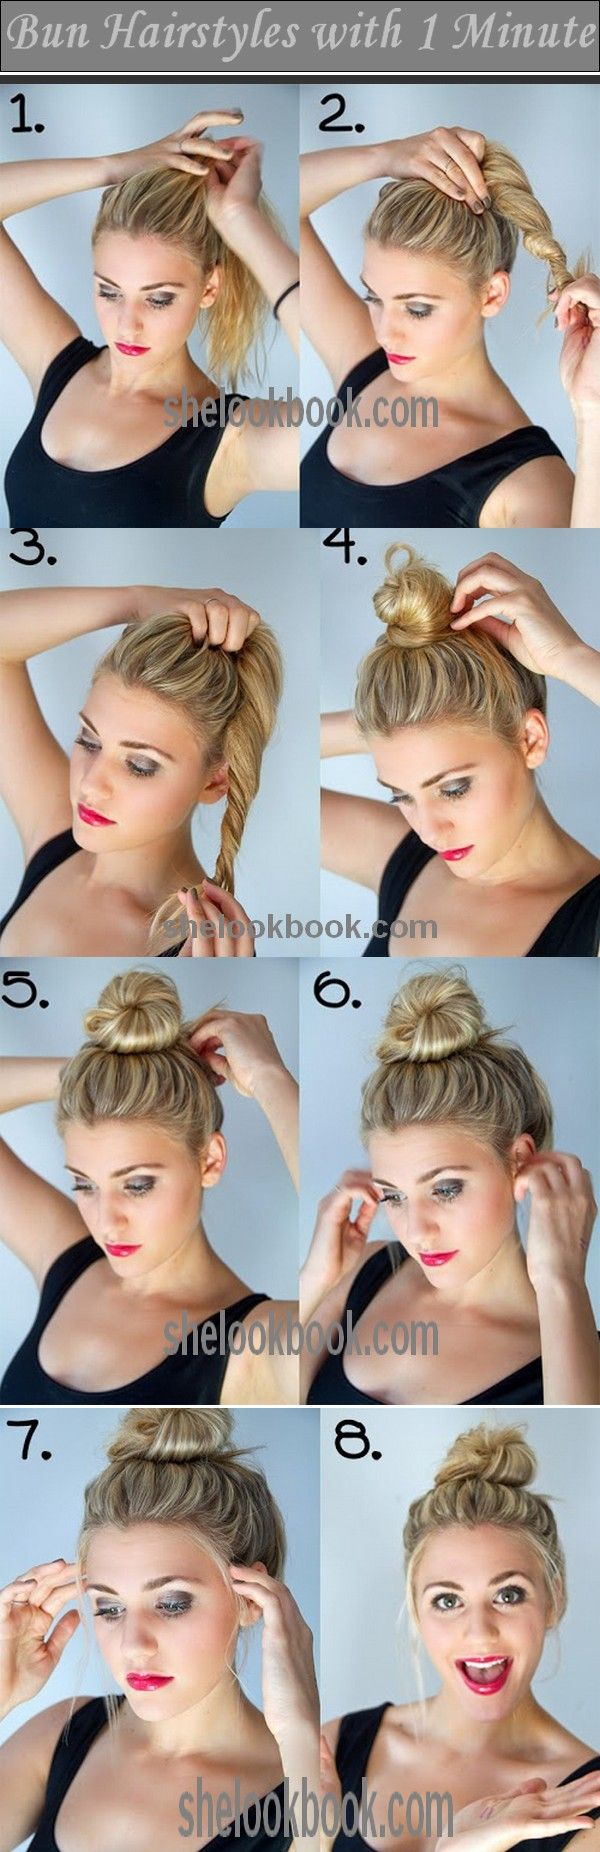 best beauty and the beast diy images on pinterest